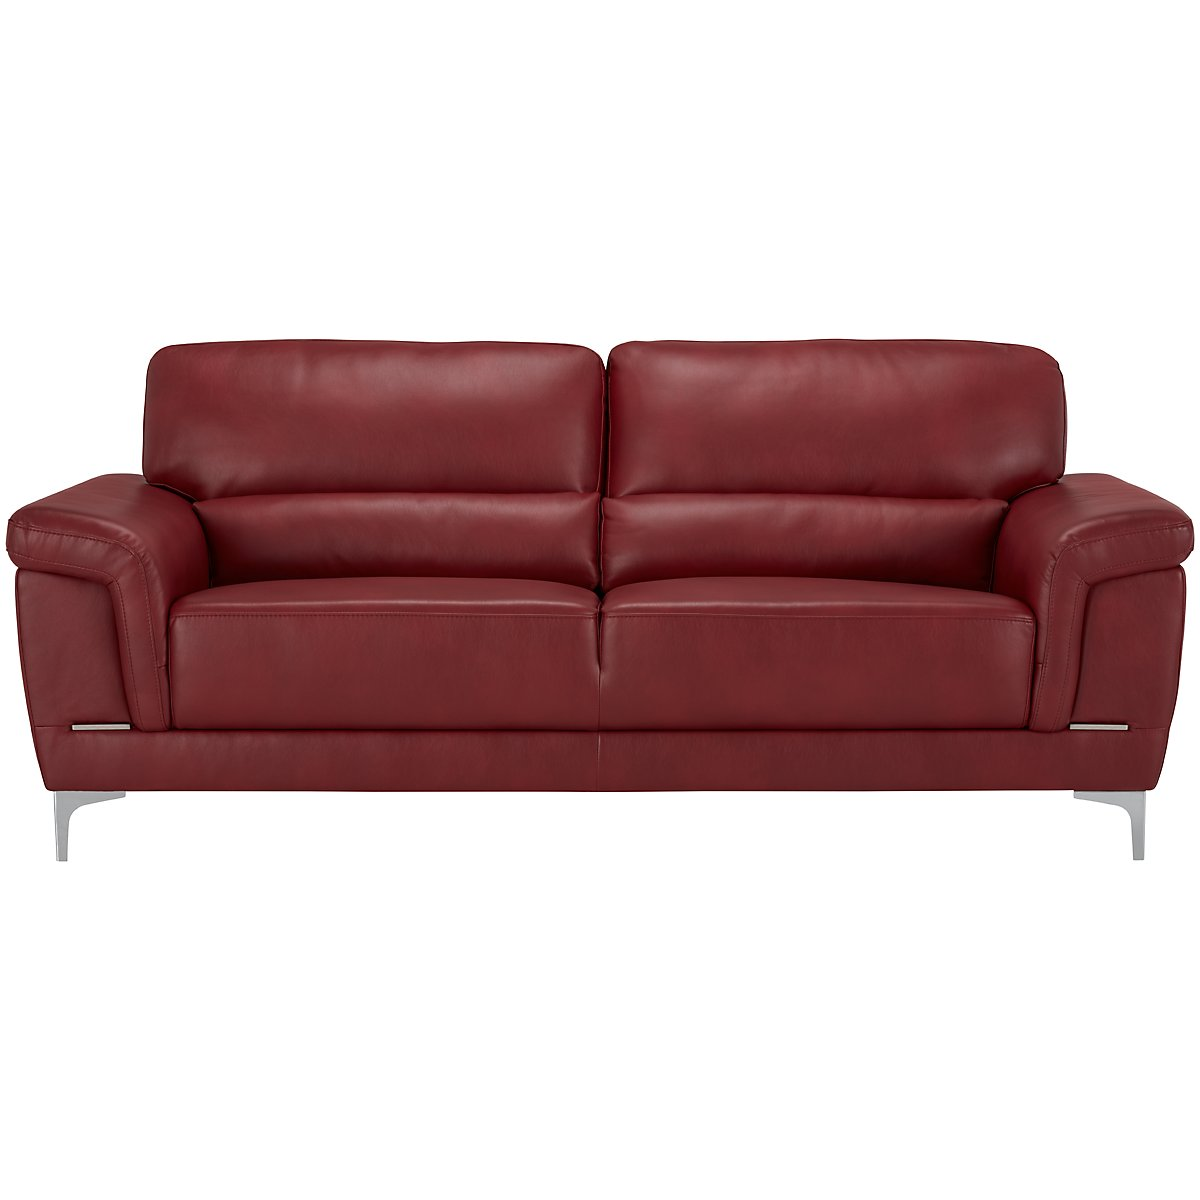 City Furniture Enzo Red Microfiber Sofa